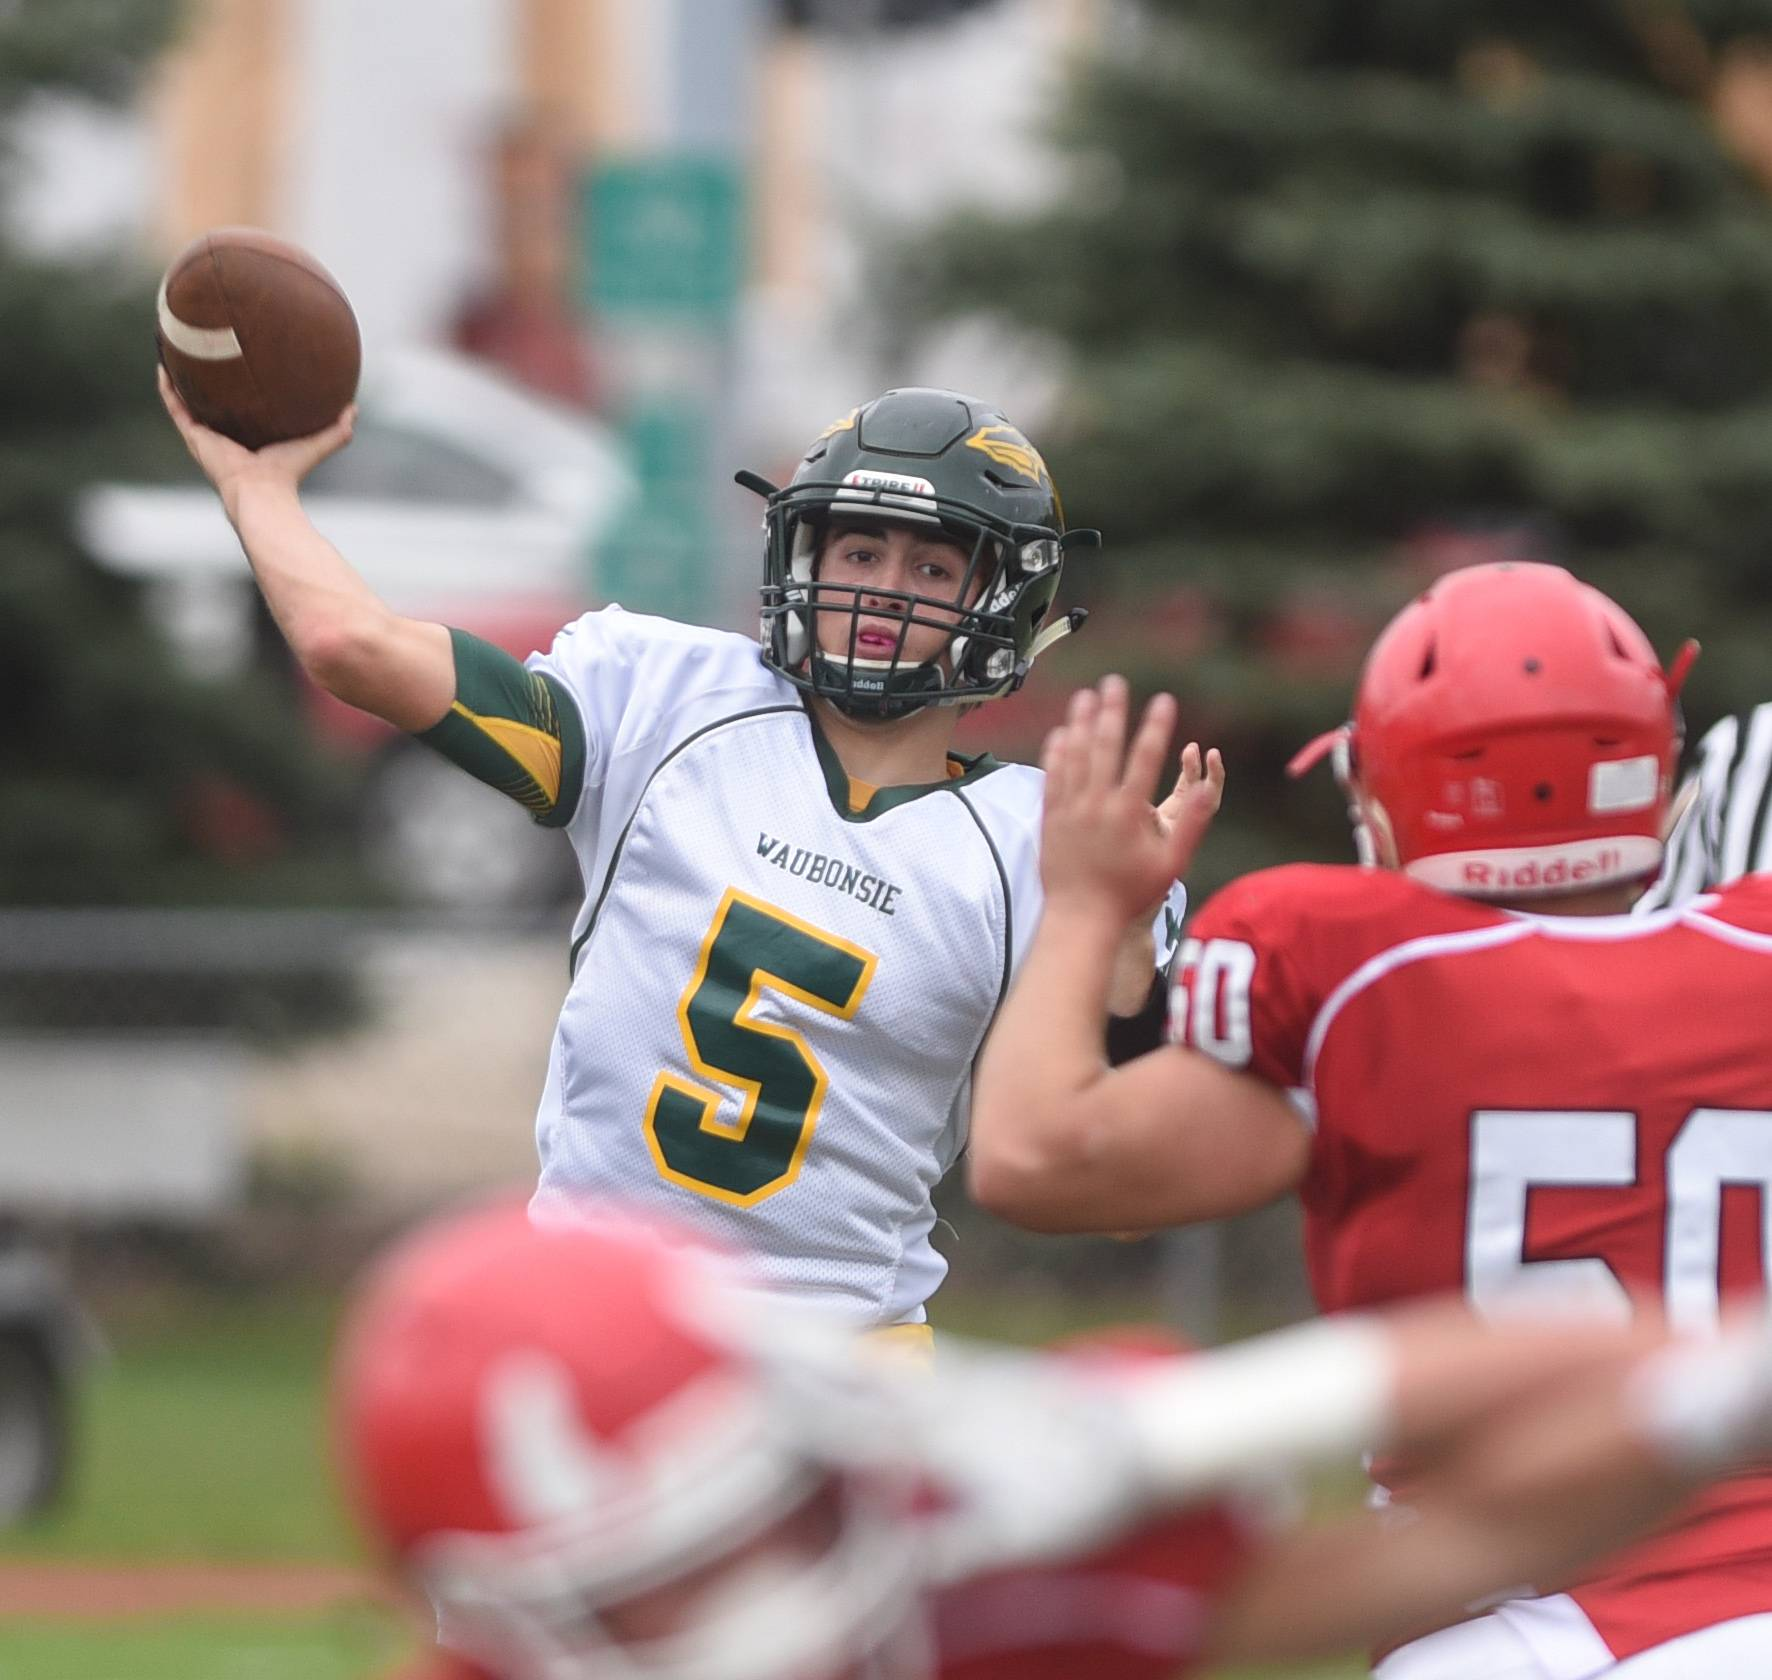 Waubonsie Valley's Tanner Westwood (5) leads perhaps the best offense in the DuPage Valley Conference this season.